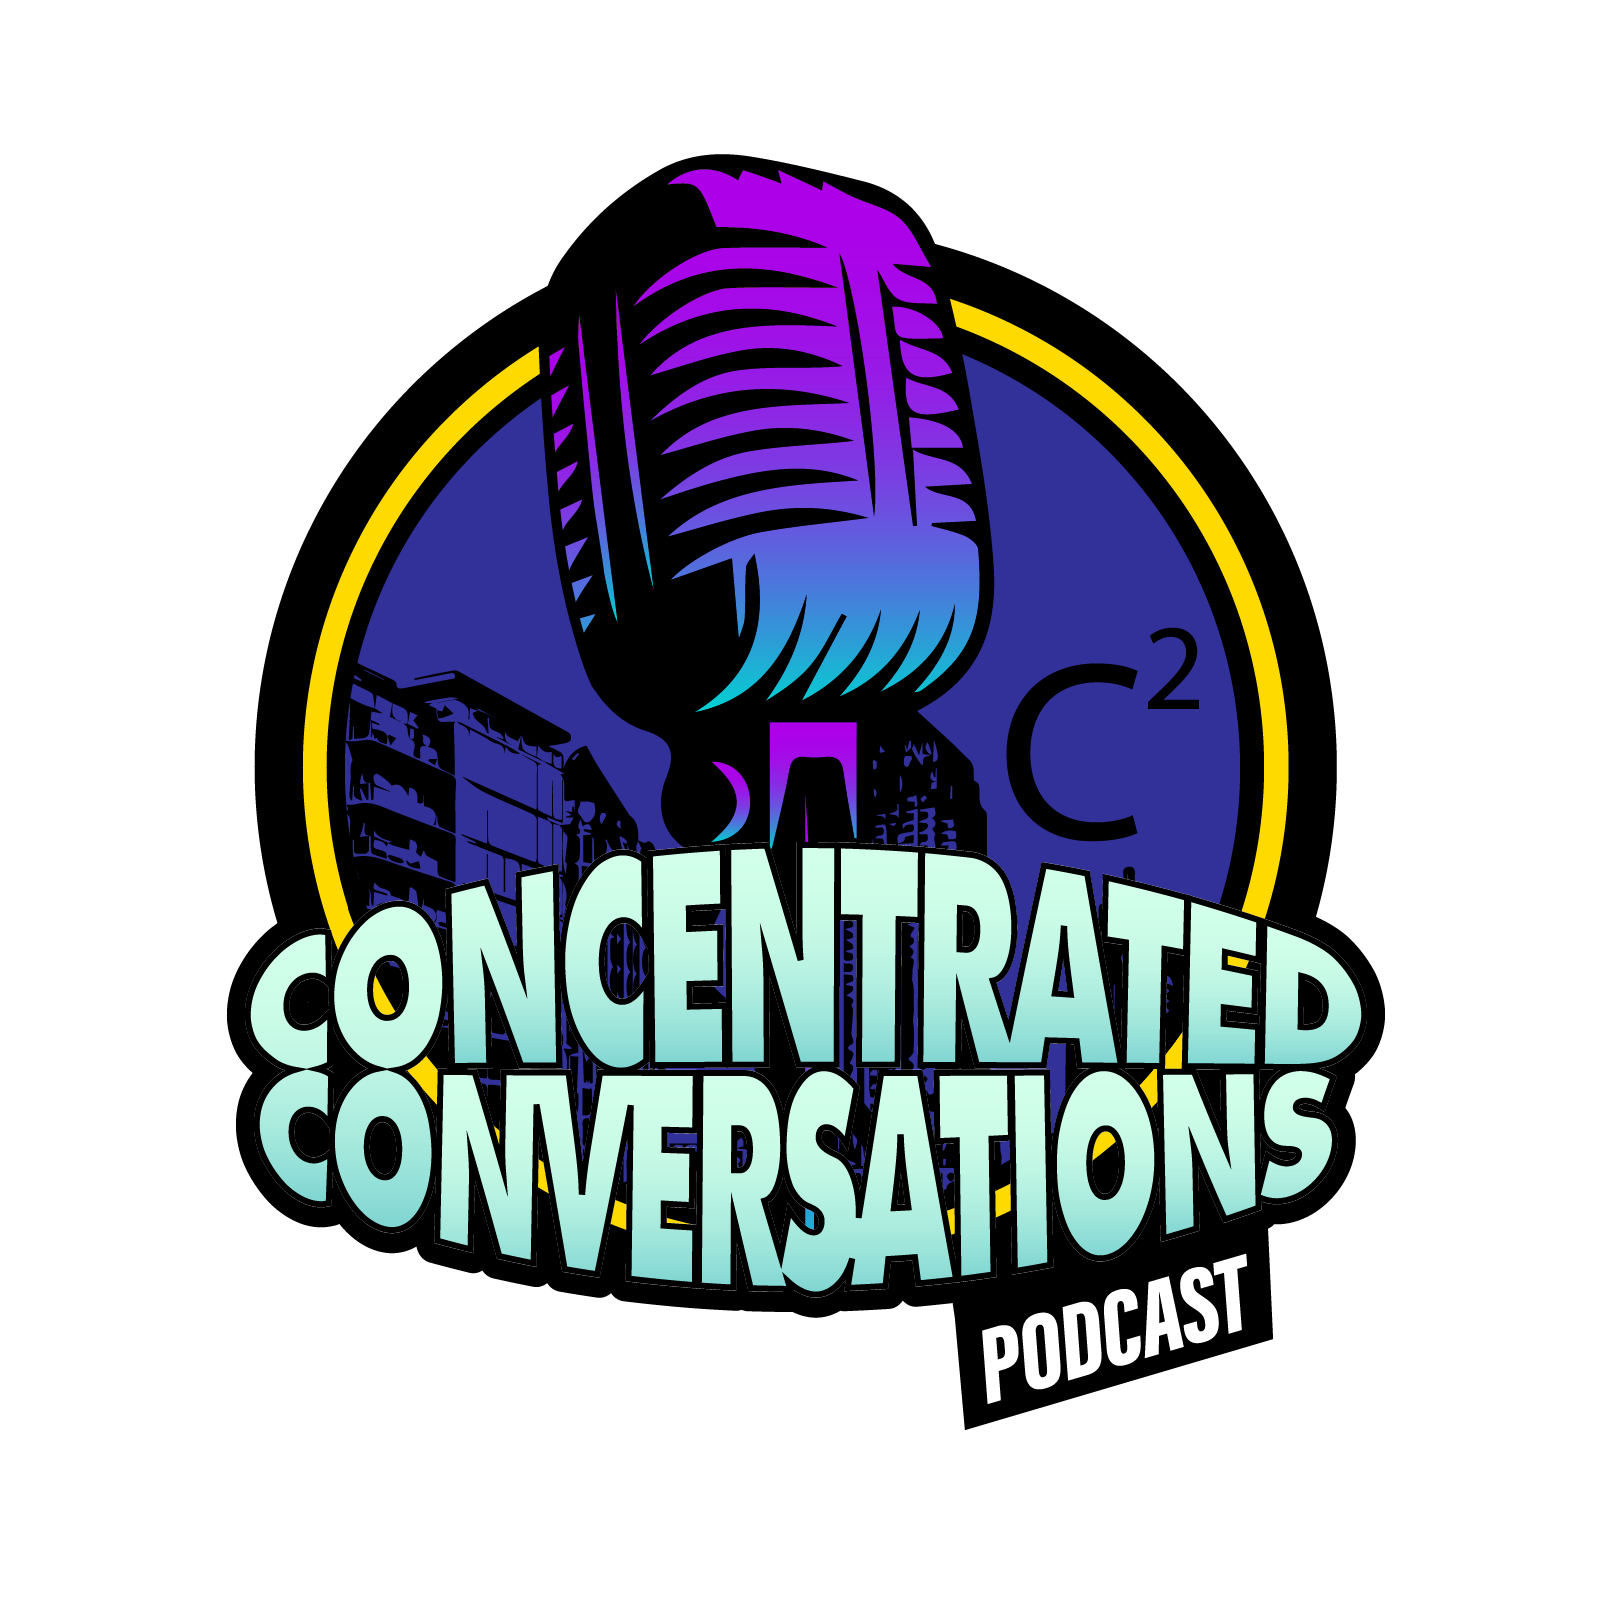 The Concentrated Conversation Podcast